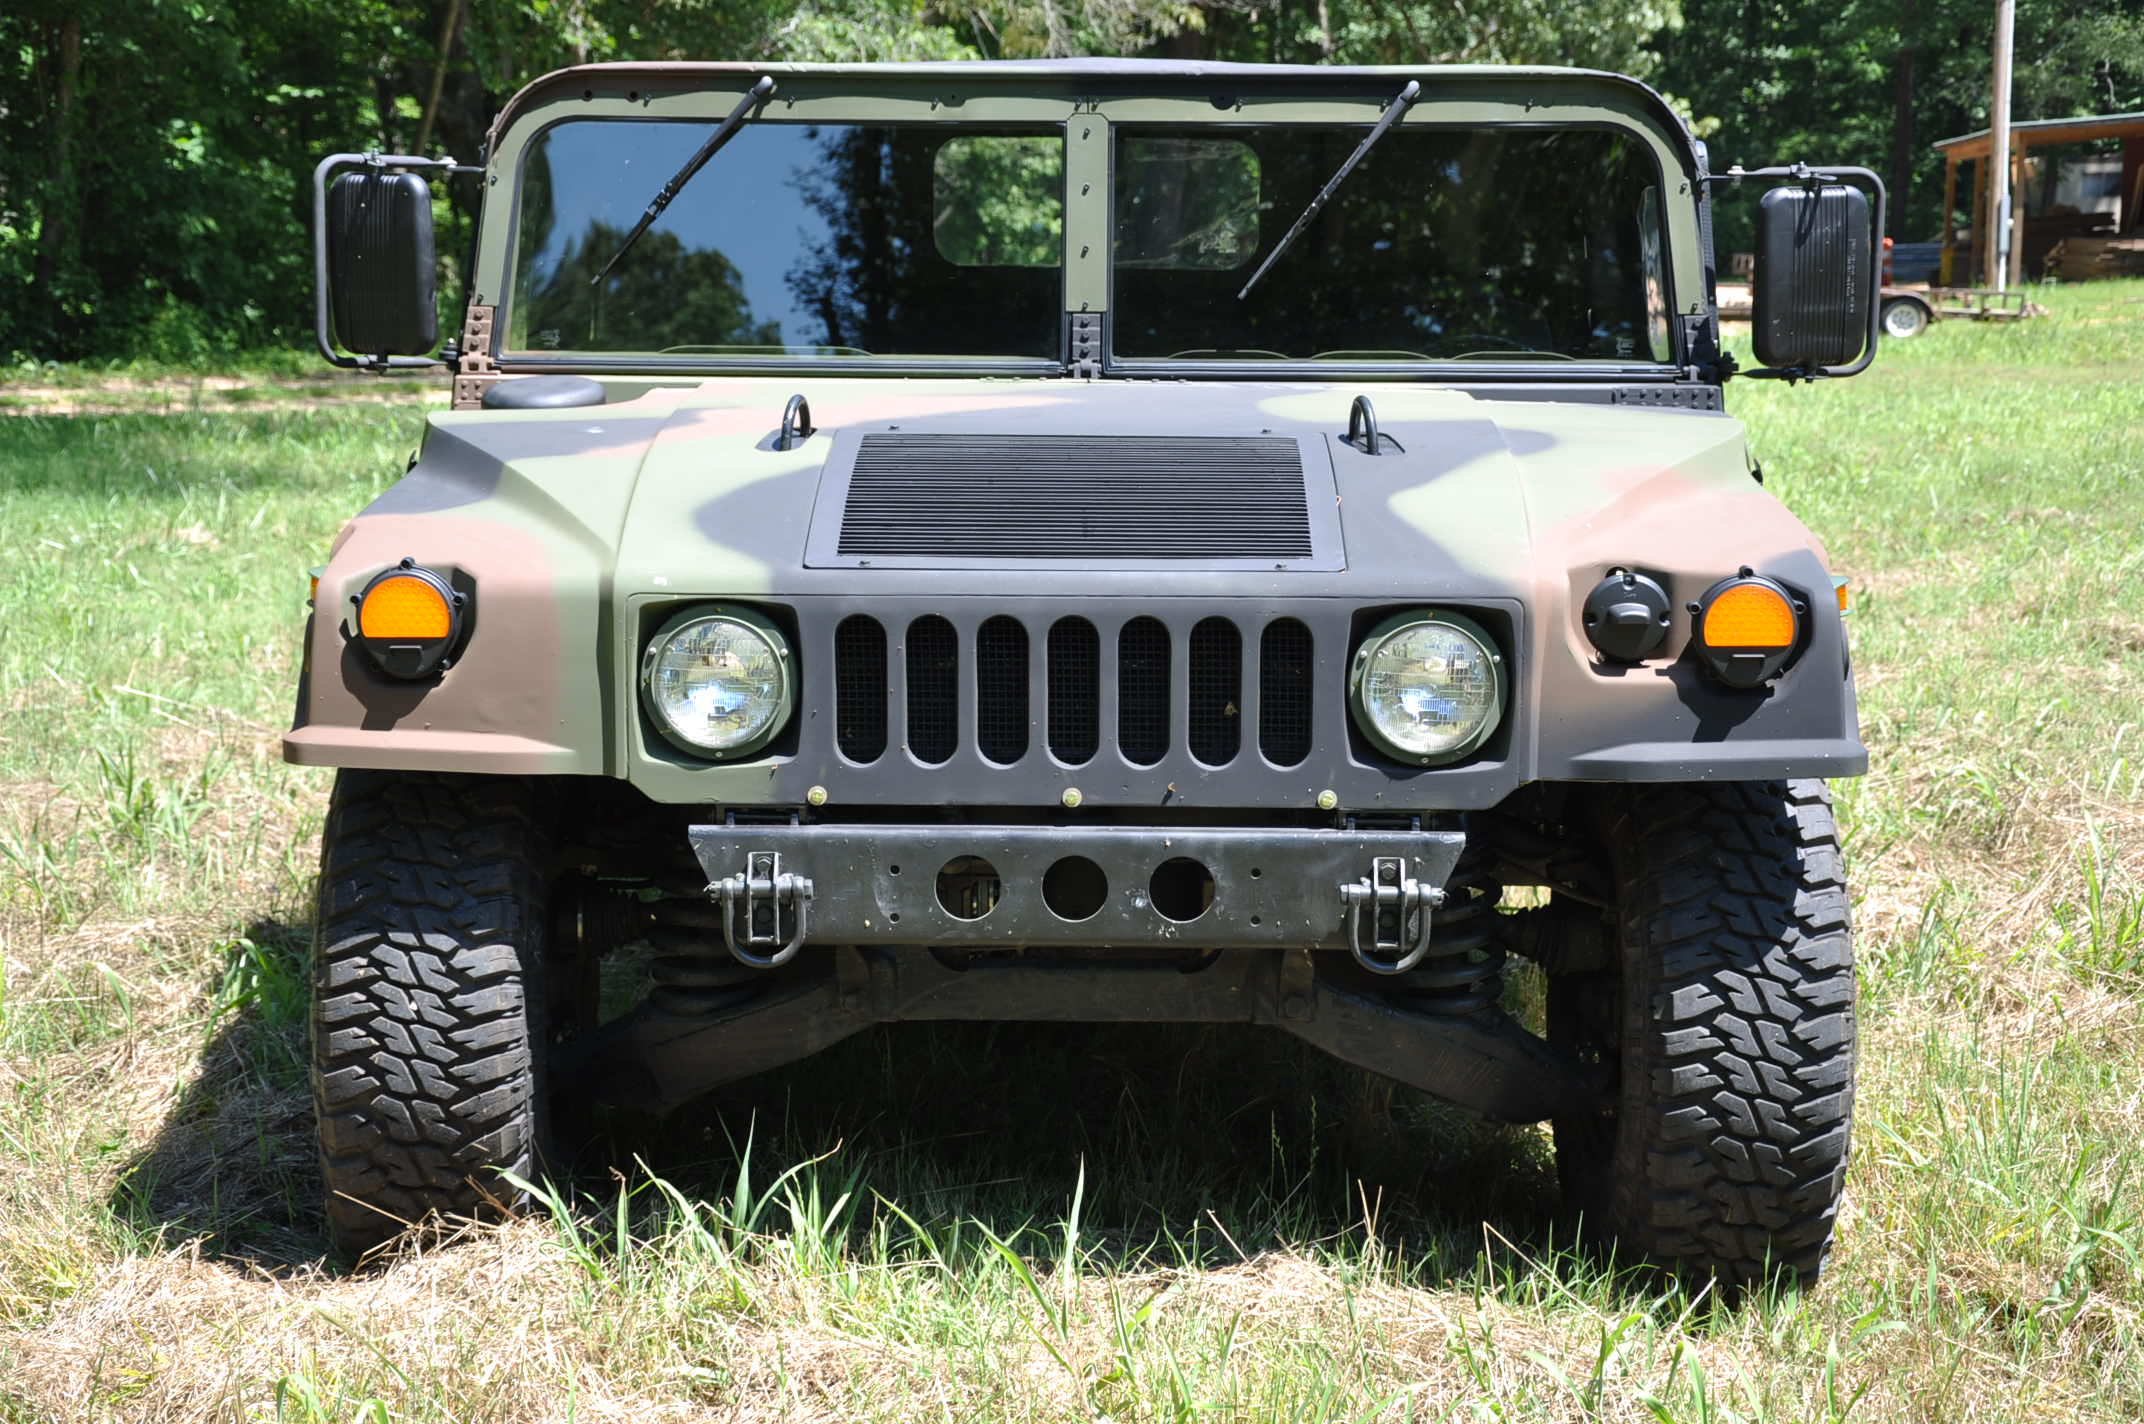 Armored Vehicles For Sale >> Used H1   Custom H1, Humvee HMMWV Builds, Accessories & Galleries » Hummer H1 Builds